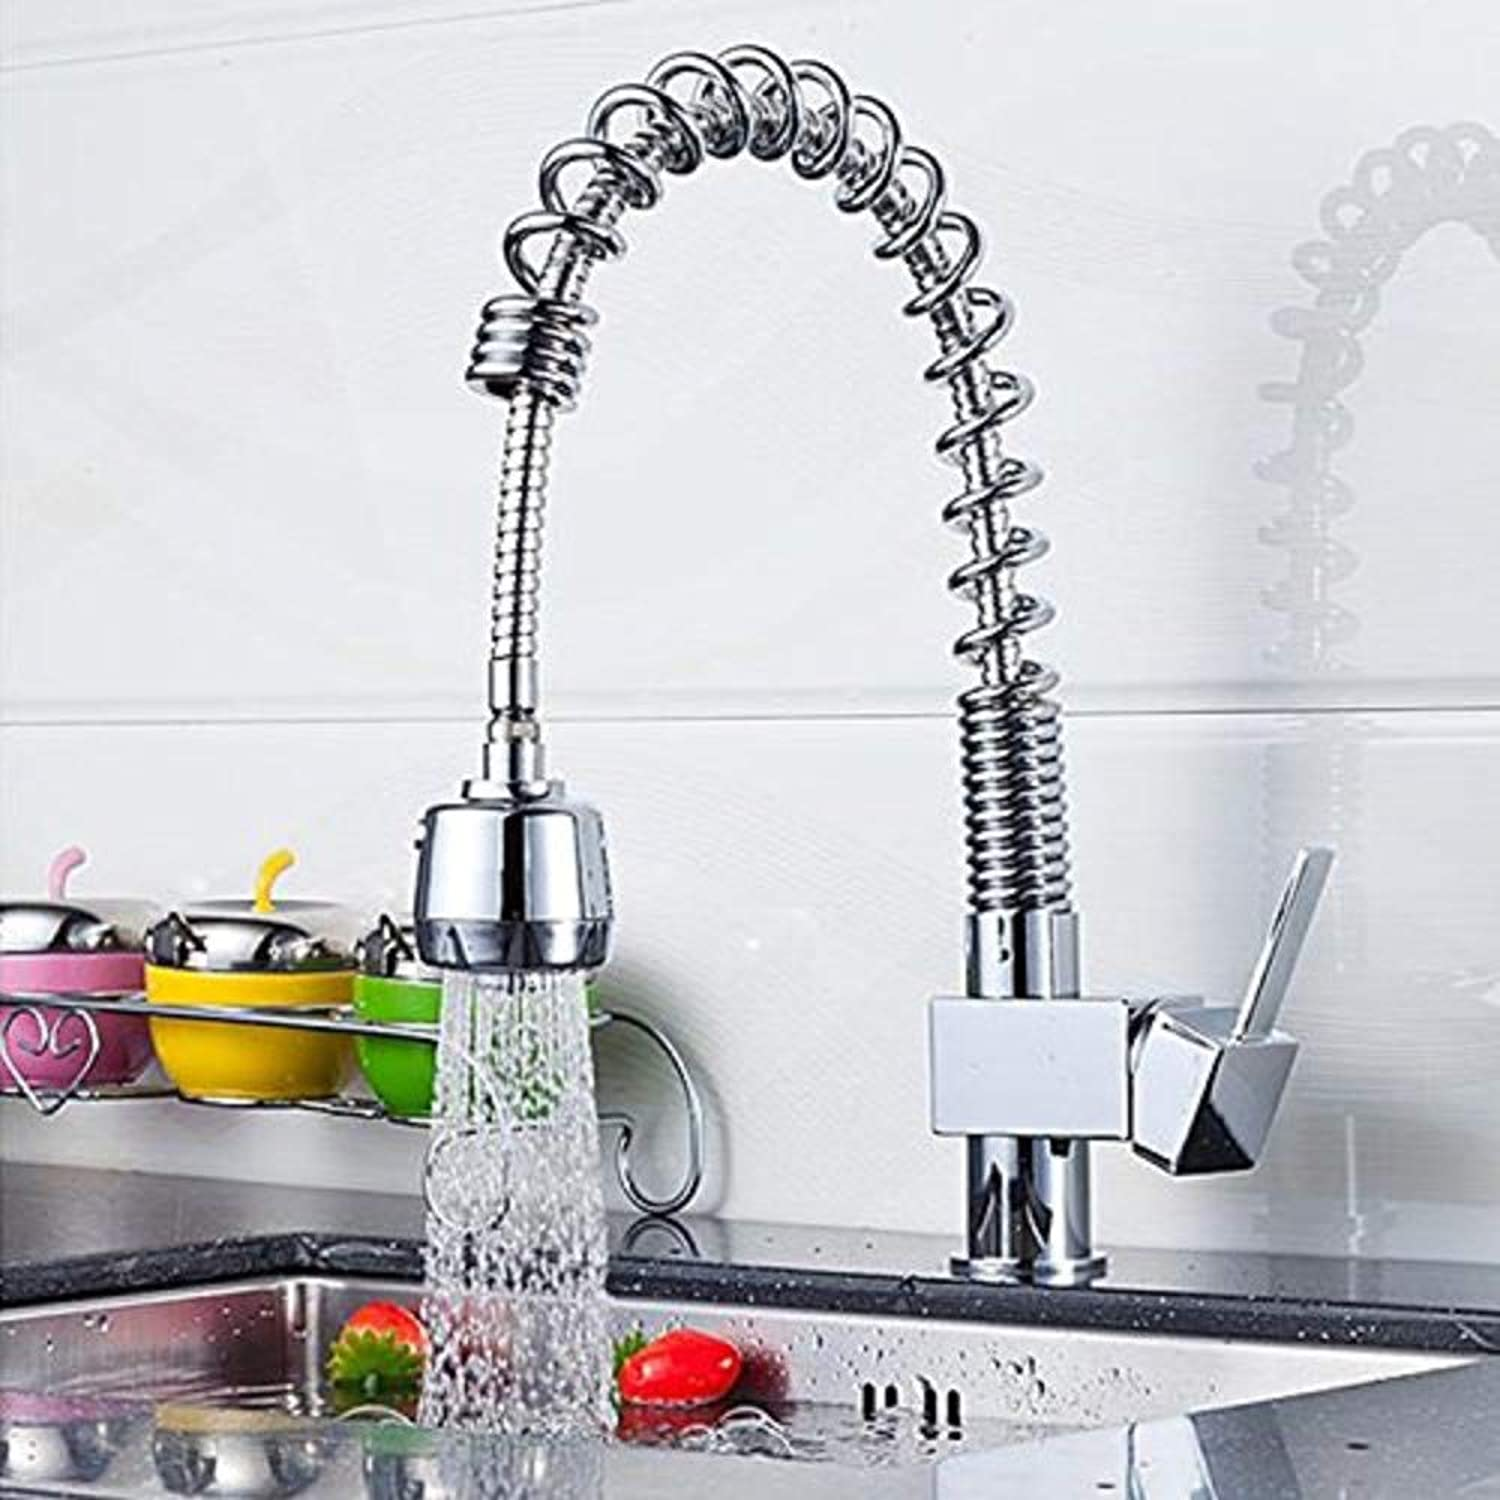 Water Tap Tools Taps 304 Stainless Steel Hot and Cold Kitchen Faucet Sink Sink Faucet